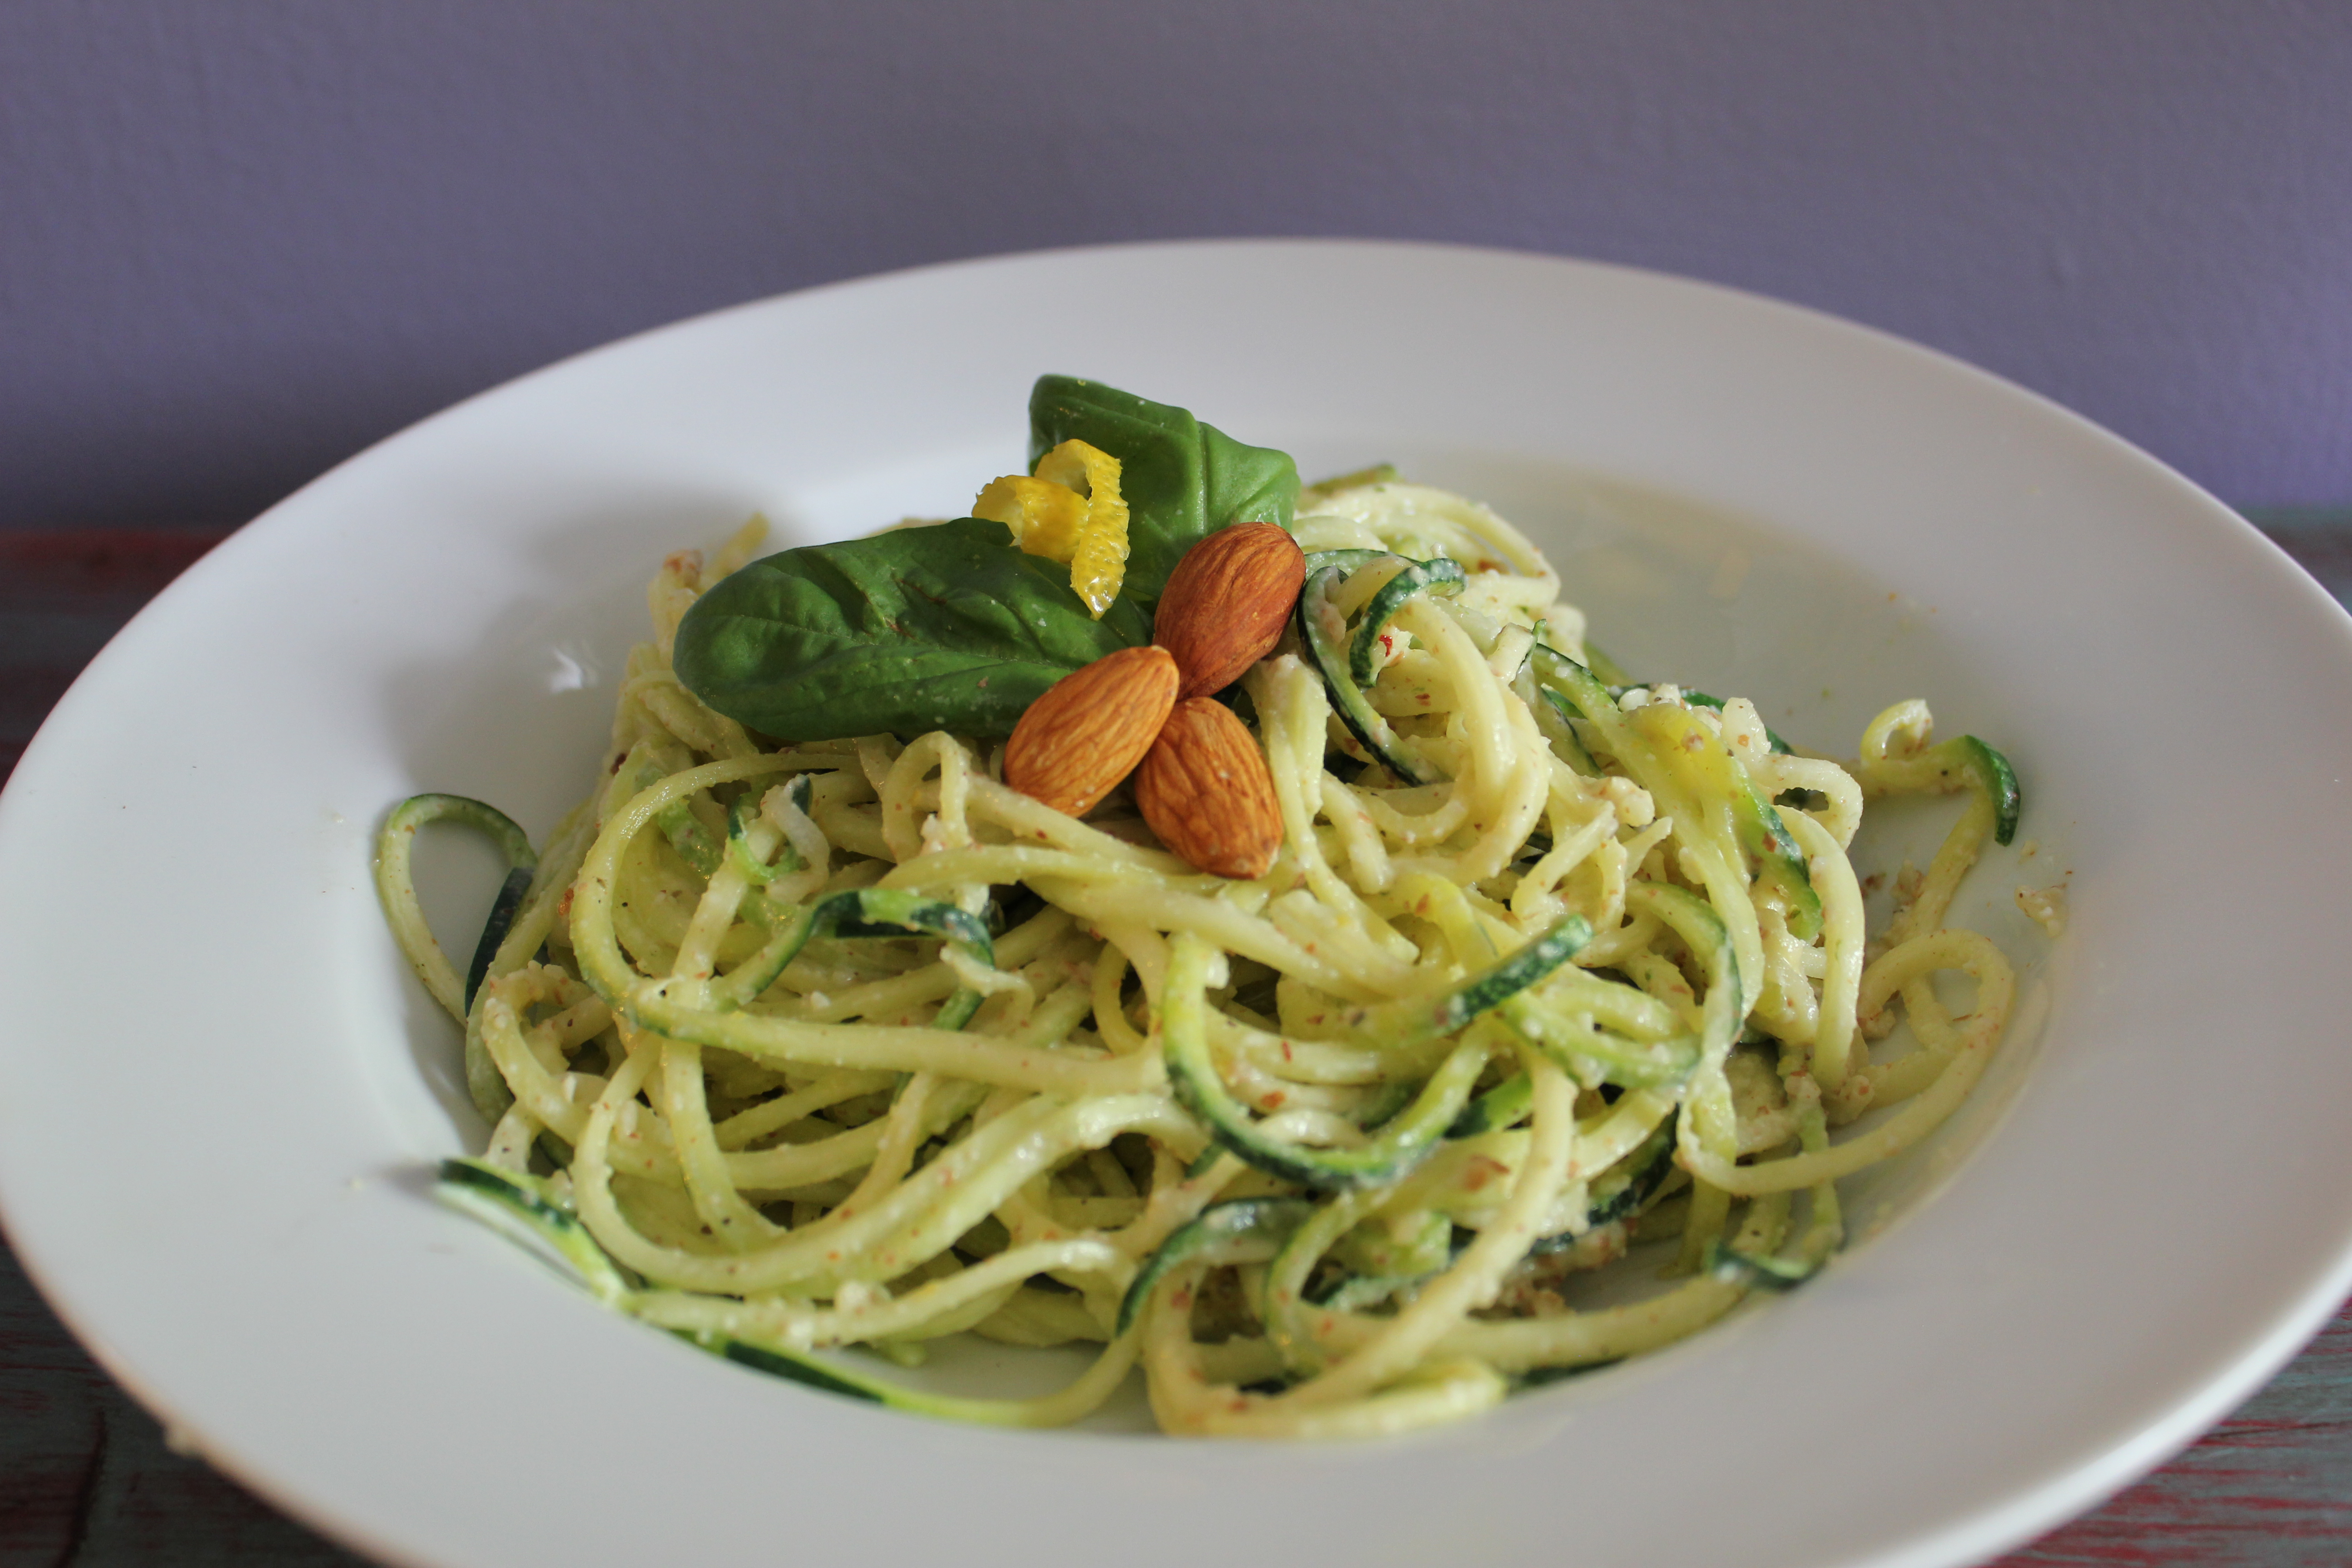 Lemon Almond Pesto with Zucchini Noodles